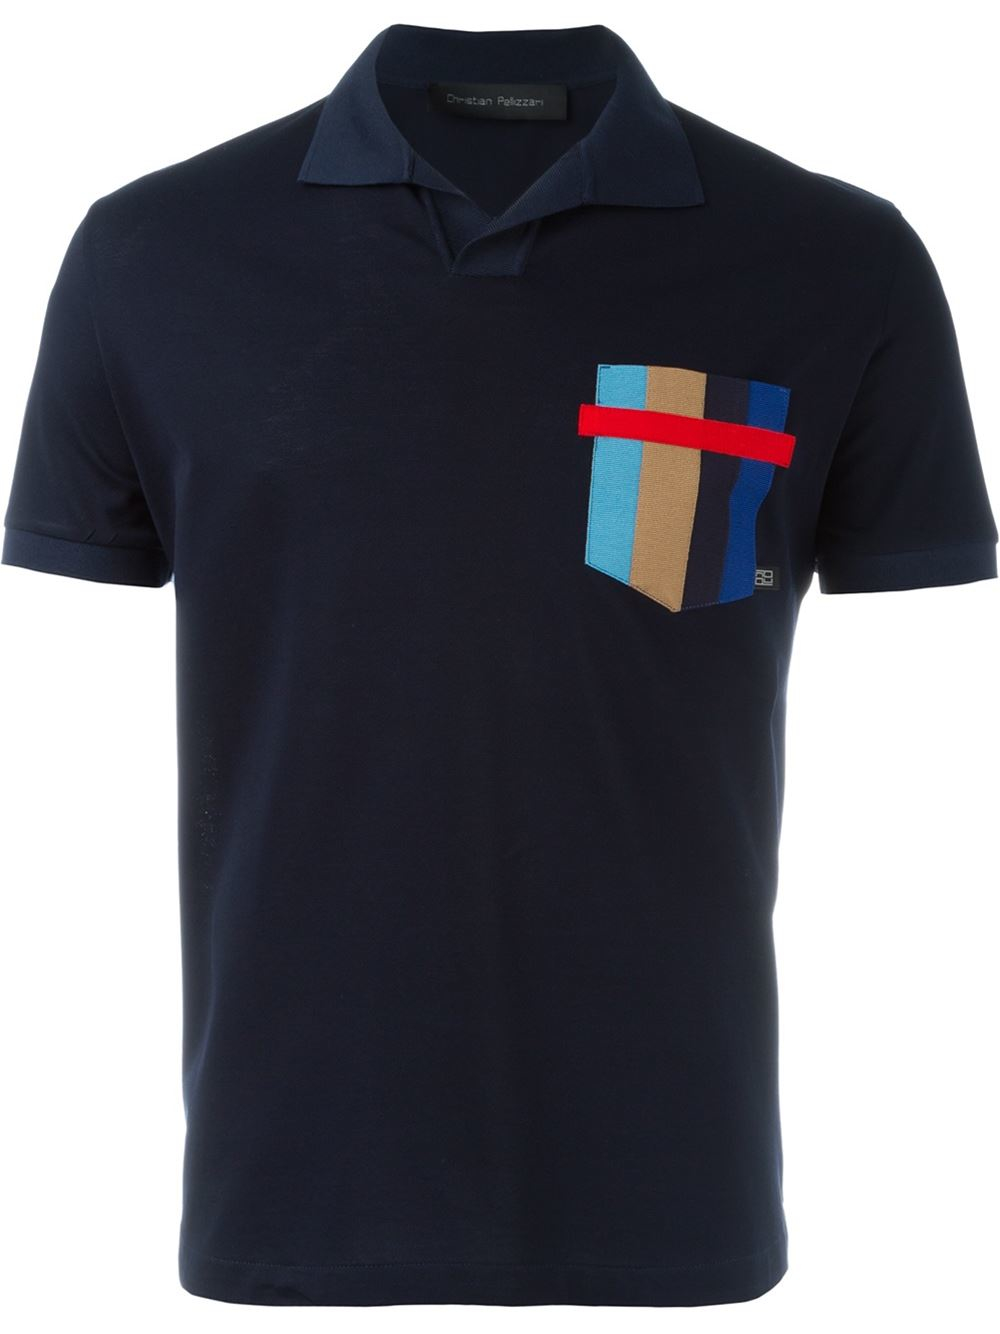 christian single men in polo Find men's underwear for sale at highly competitive prices shop hisroom's extensive collection of men's brand name underwear free shipping  polo ralph lauren lclb.